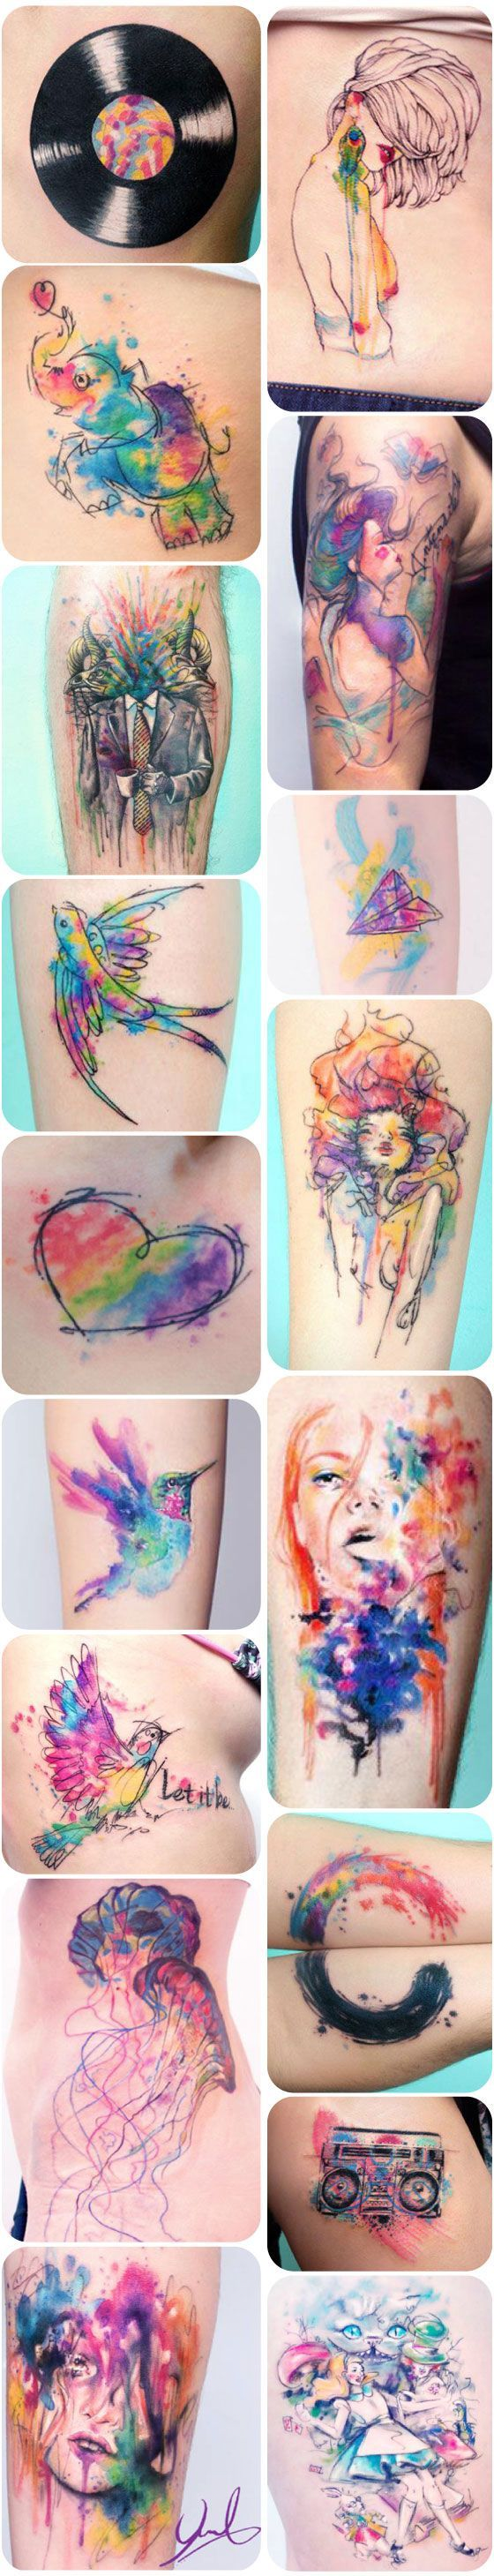 Love the idea of watercolor tattoos. I'm not sure how long it would last, or if it would age well... http://www.arcreactions.com/